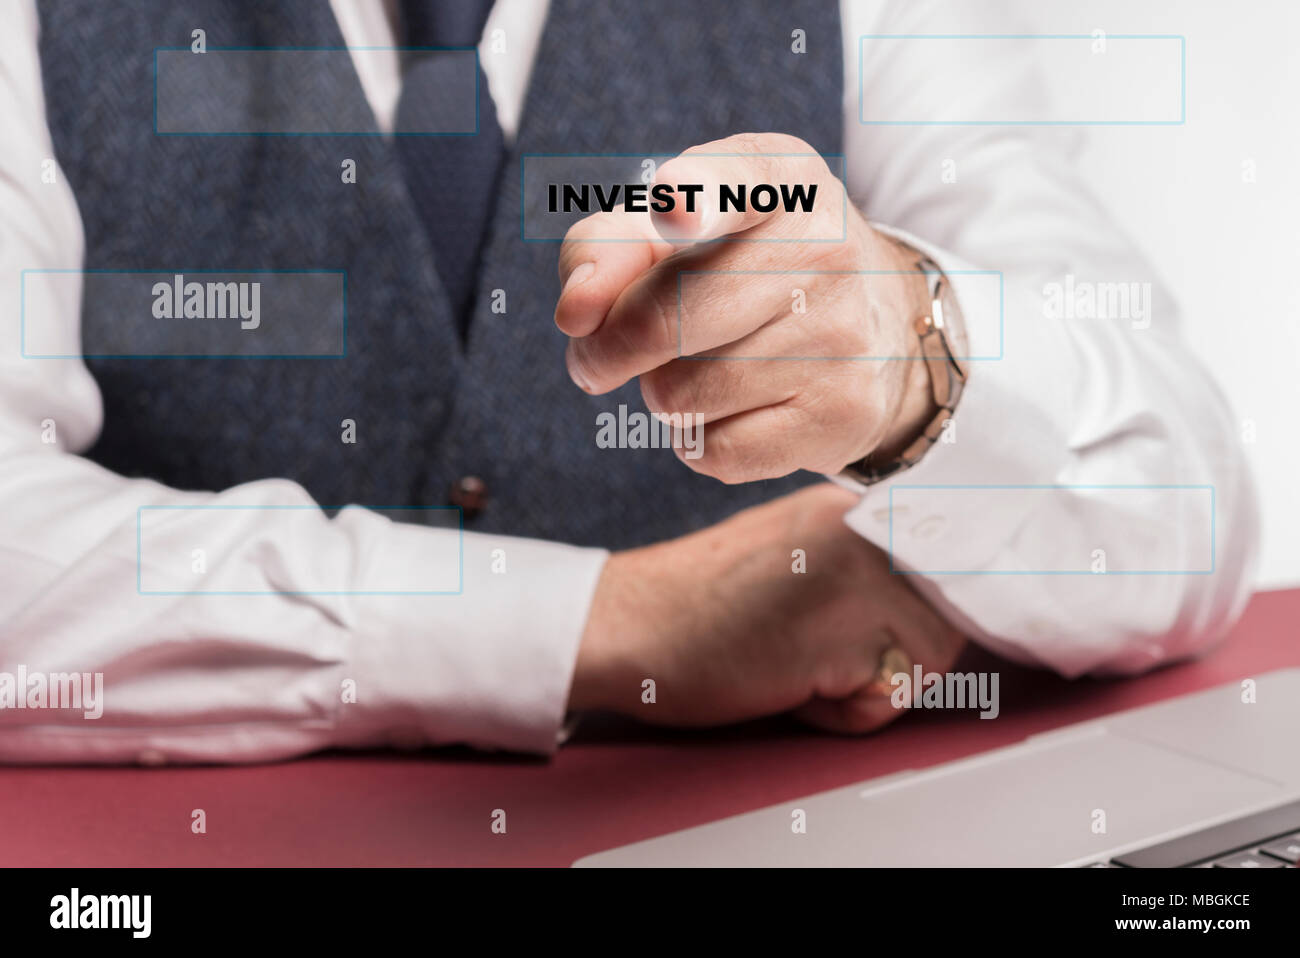 A bussinessman sitting at a desk pressing a virtual button saying invest now. - Stock Image